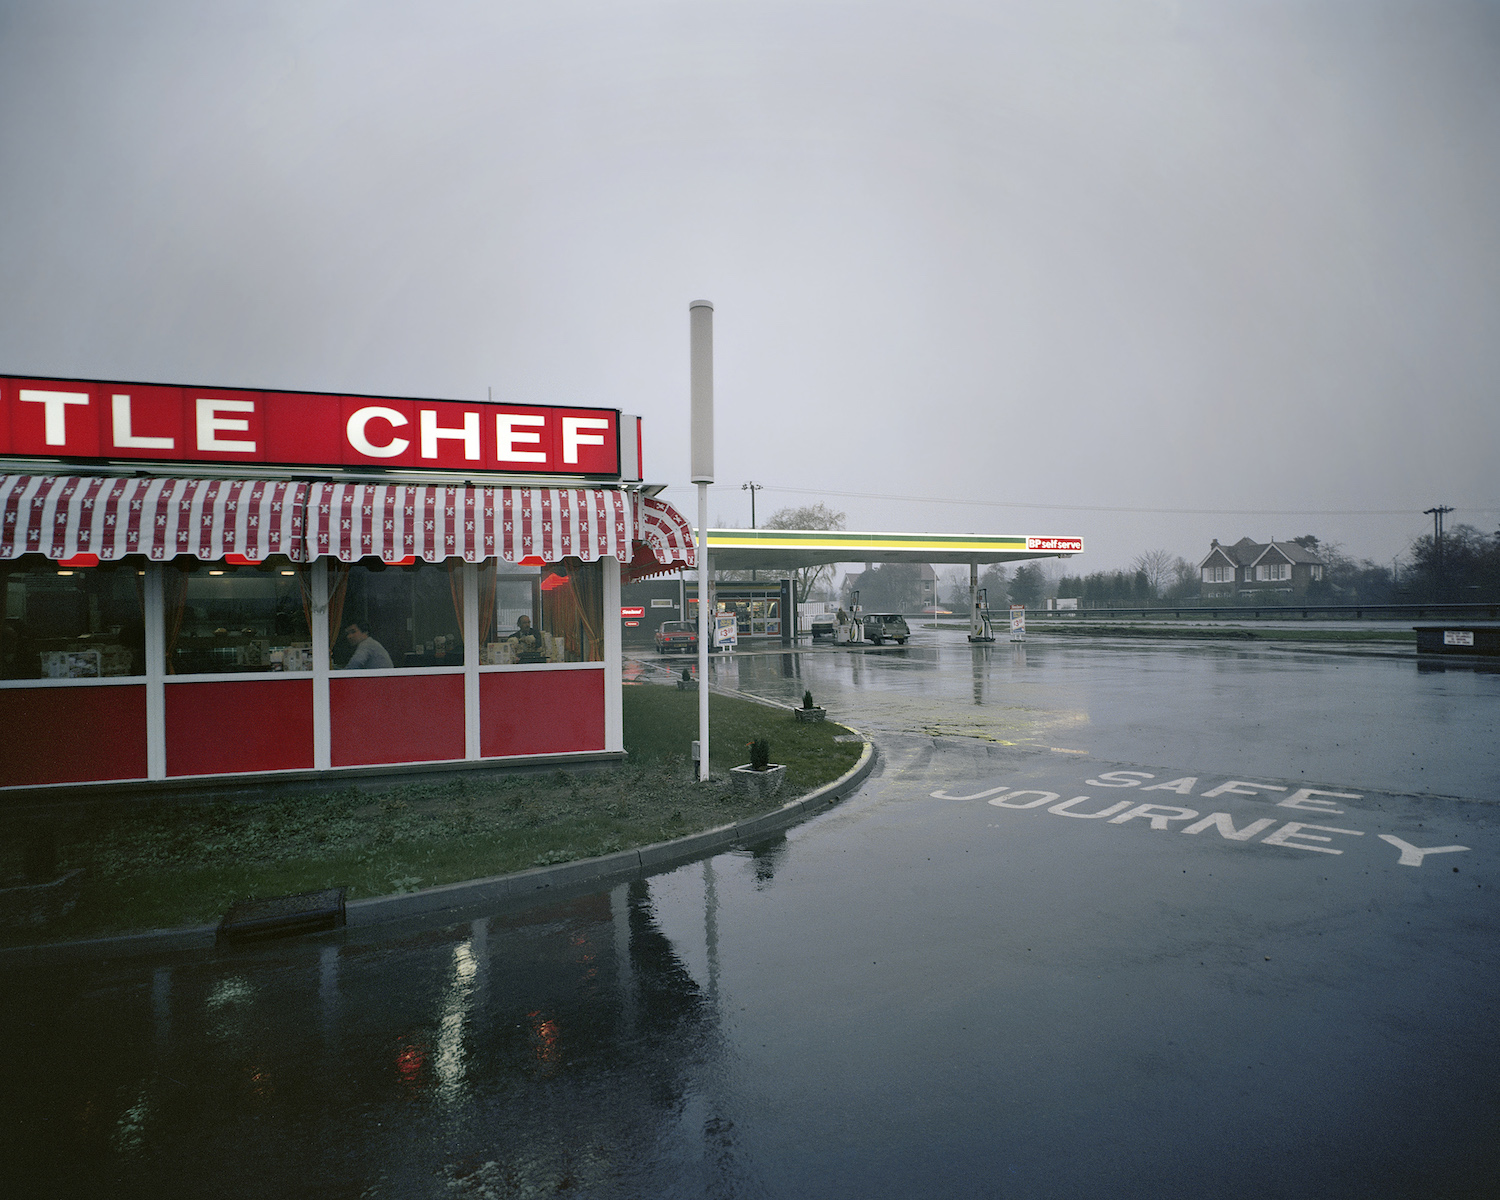 Paul Graham, Little Chef, from A1